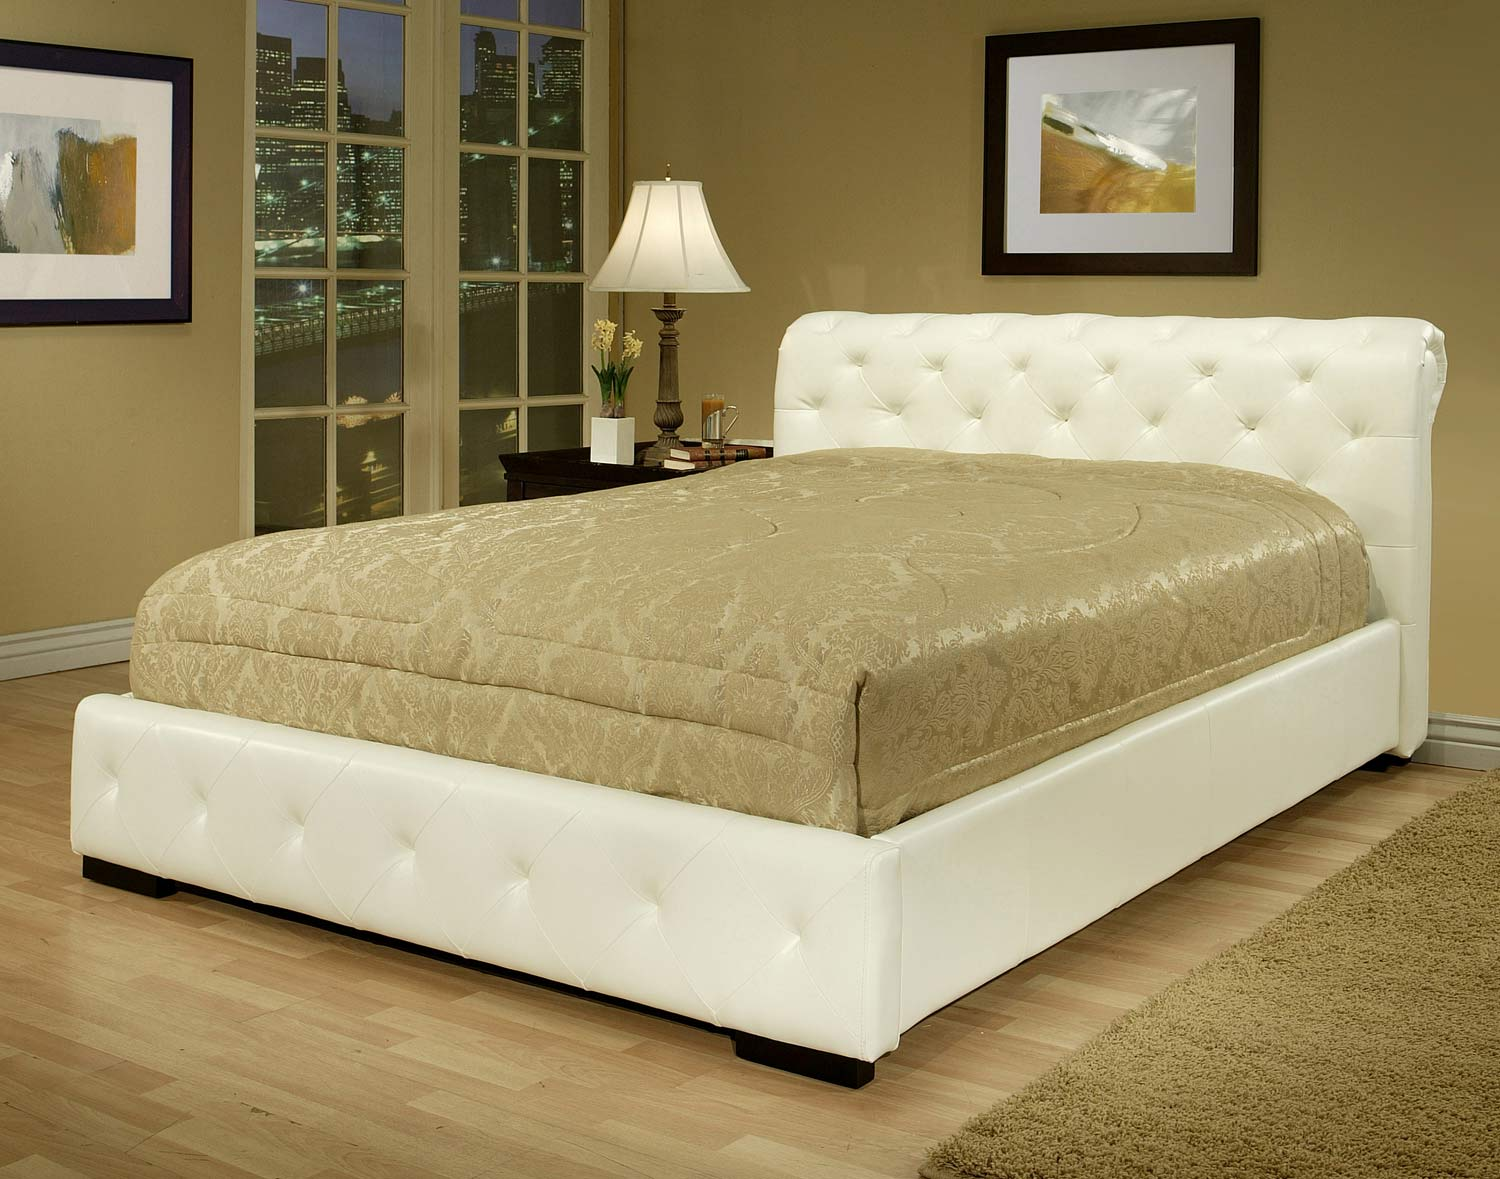 Abbyson Living Deanna White Bi-cast Leather King Bed